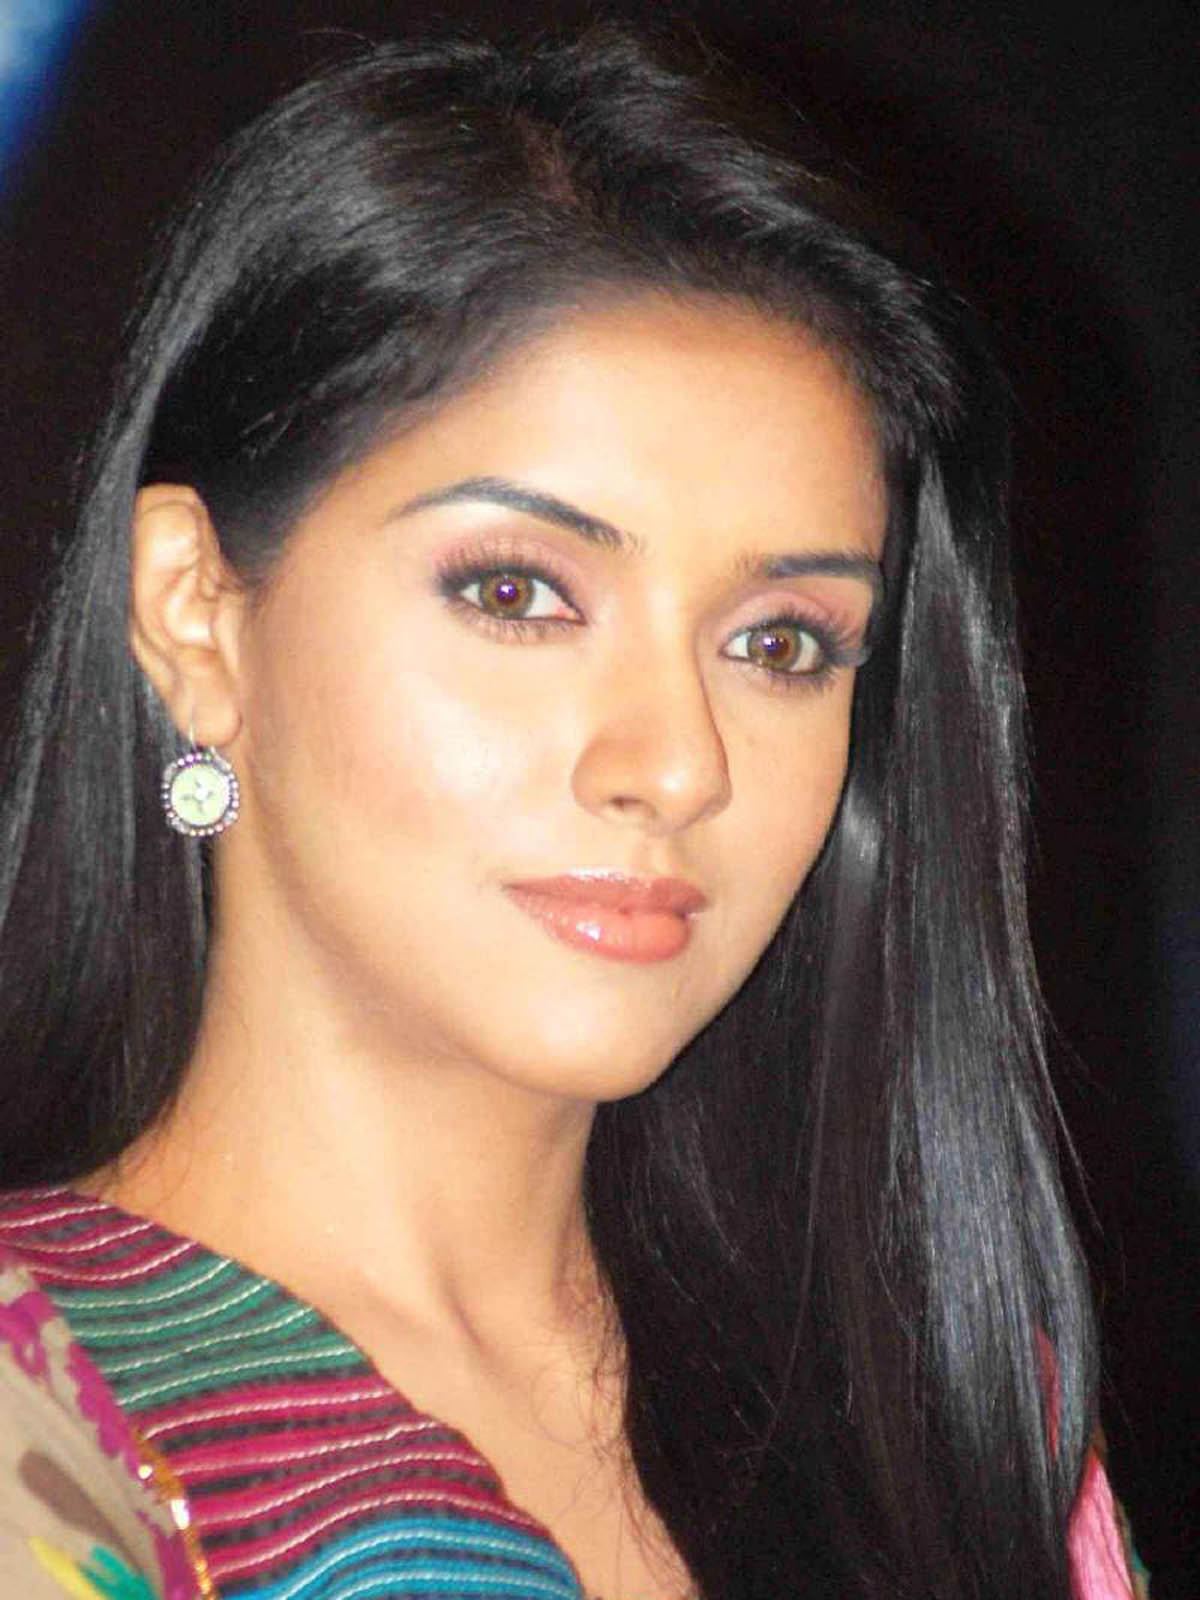 asin-9 | hd wallpapers, hd images, hd pictures